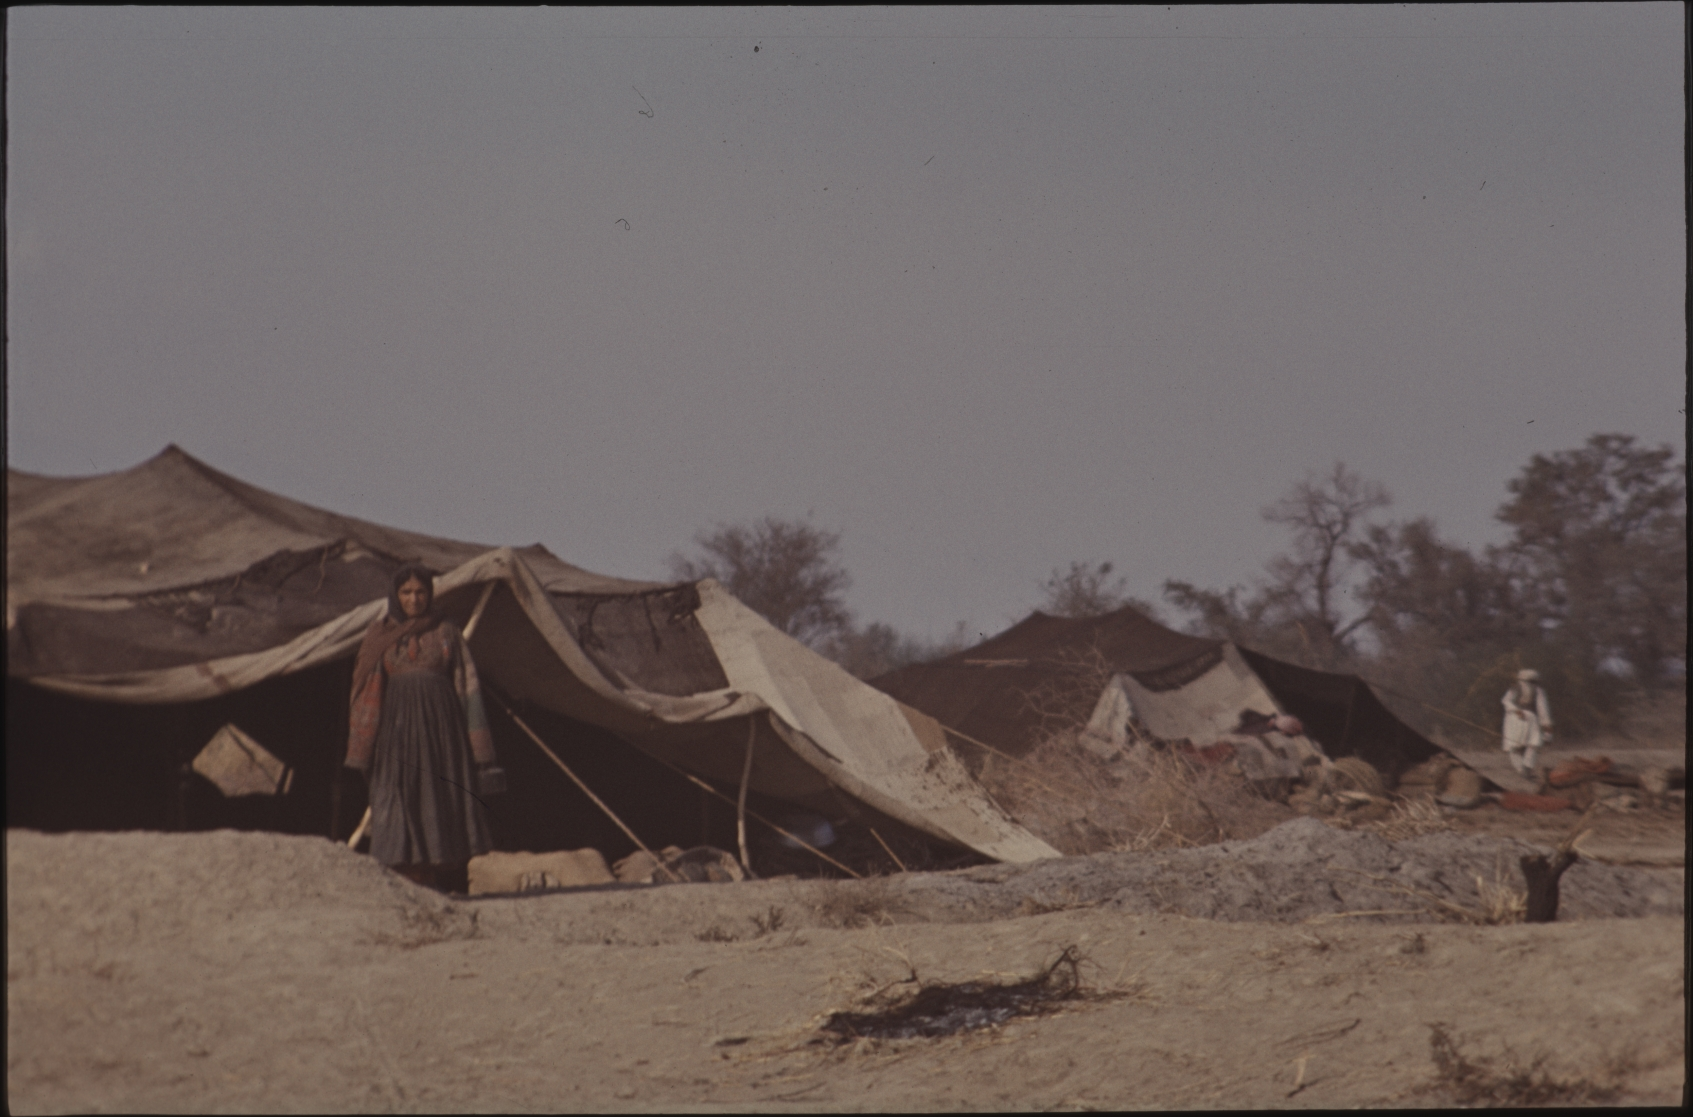 While the men care for the animals, the women are responsible for keeping the tent, cooking and raising children. This photo is from the winter camp in Pakistan. Photo: Jean Bourgeois, 1969